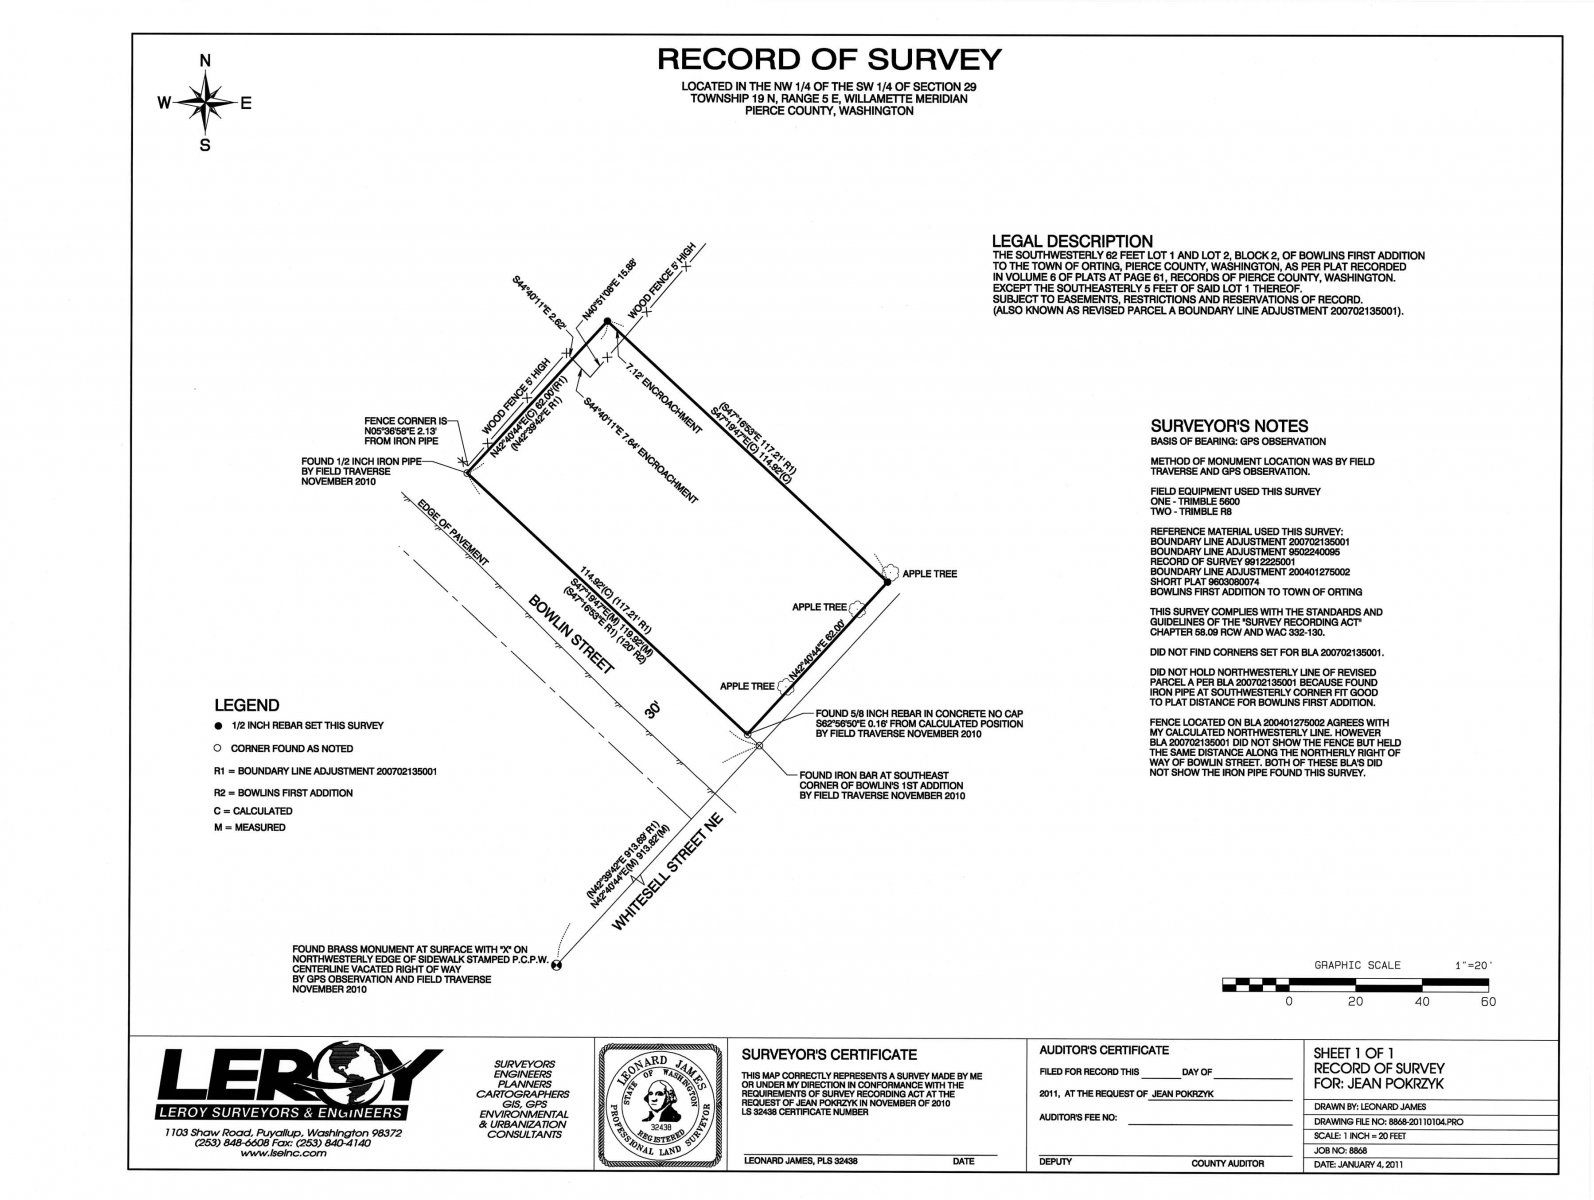 How to Obtain a Copy of a Property Survey